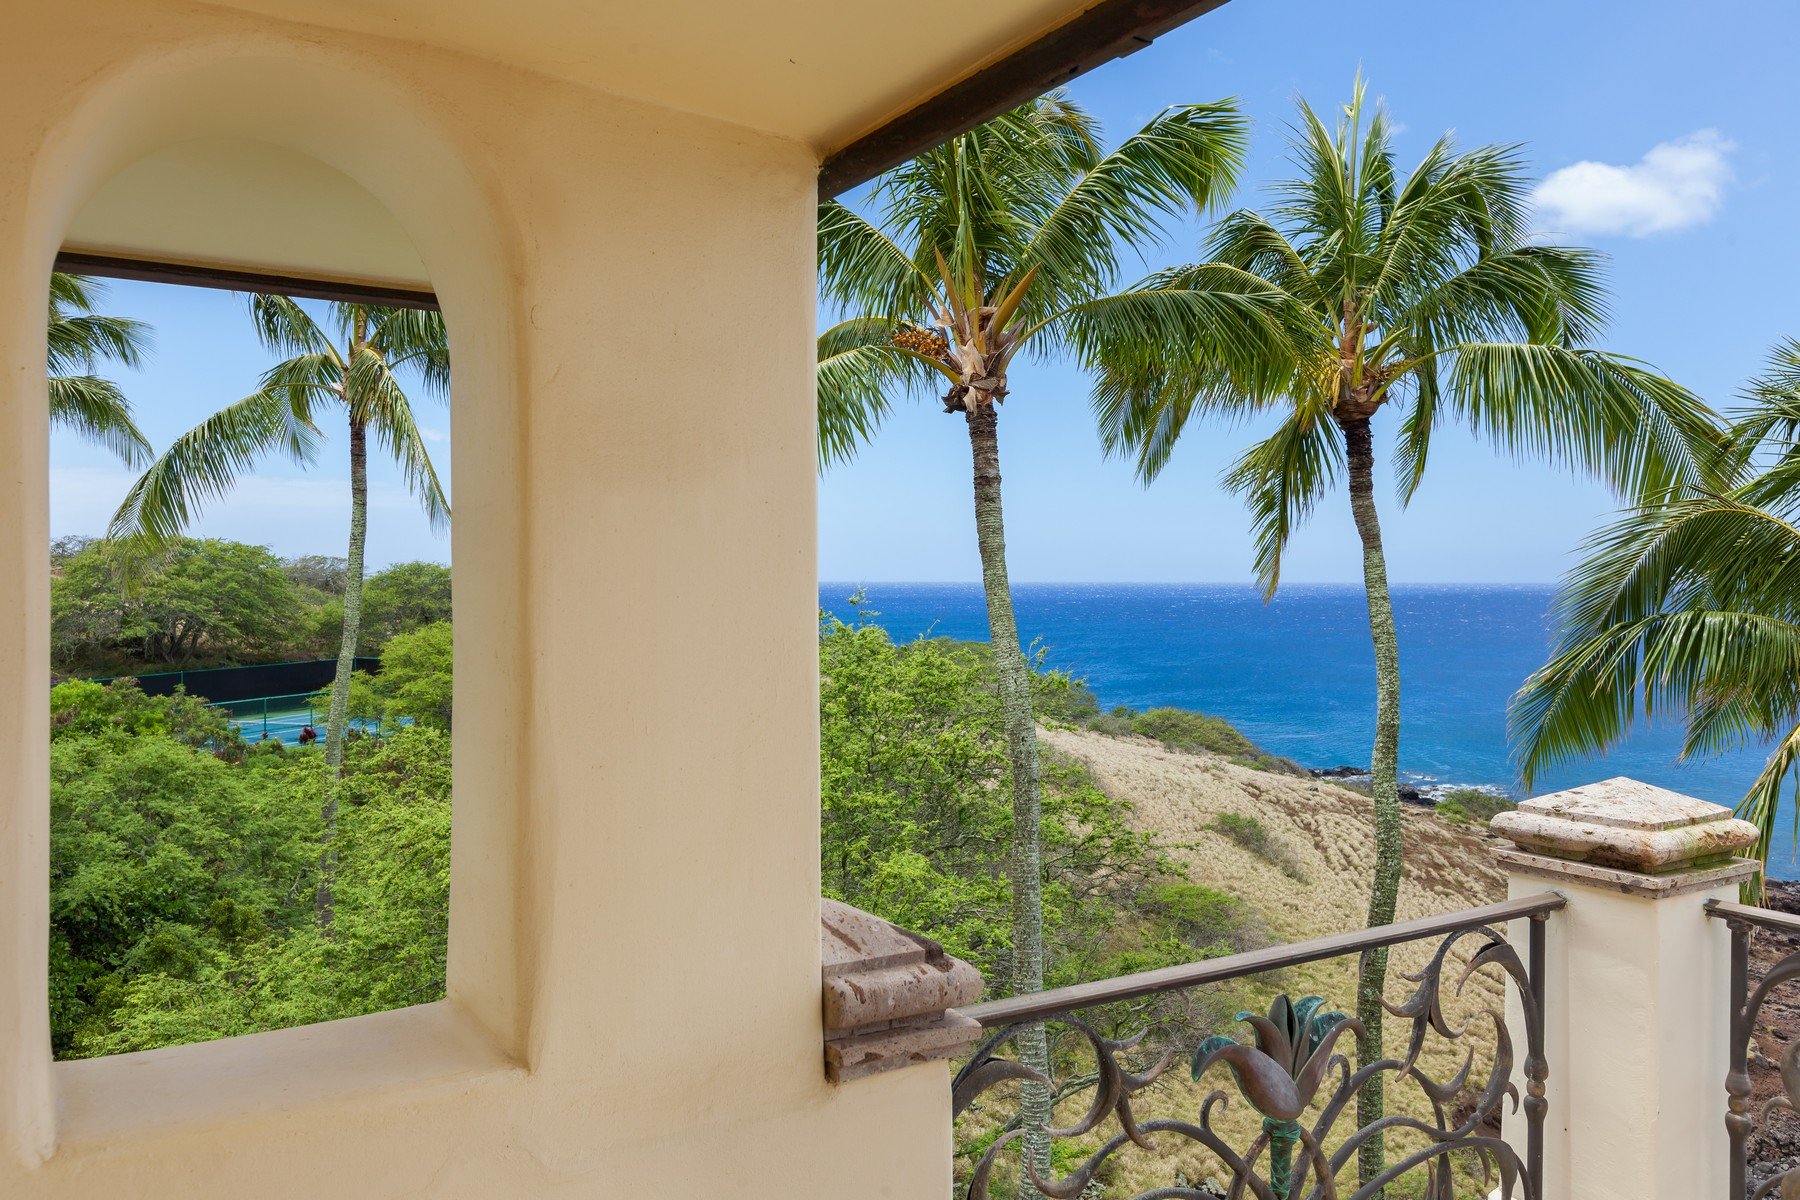 Single Family Home for Sale at Puakea Bay Ranch 56-3083 Puakea Bay Dr Hawi, Hawaii 96719 United States